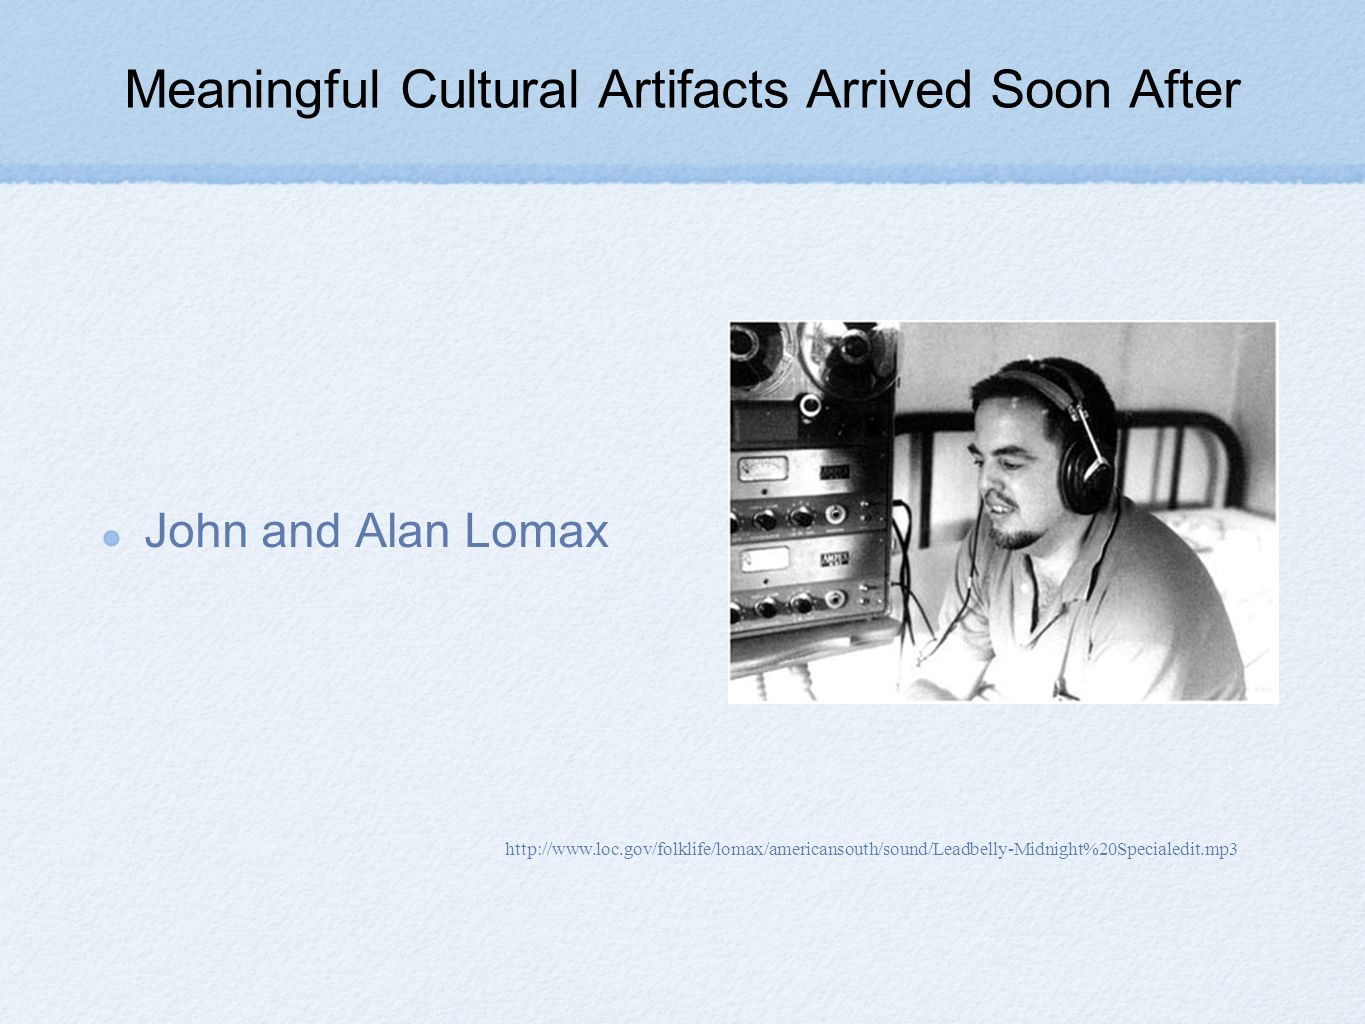 Meaningful Cultural Artifacts Arrived Soon After John and Alan Lomax http://www.loc.gov/folklife/lomax/americansouth/sound/Leadbelly-Midnight%20Specialedit.mp3